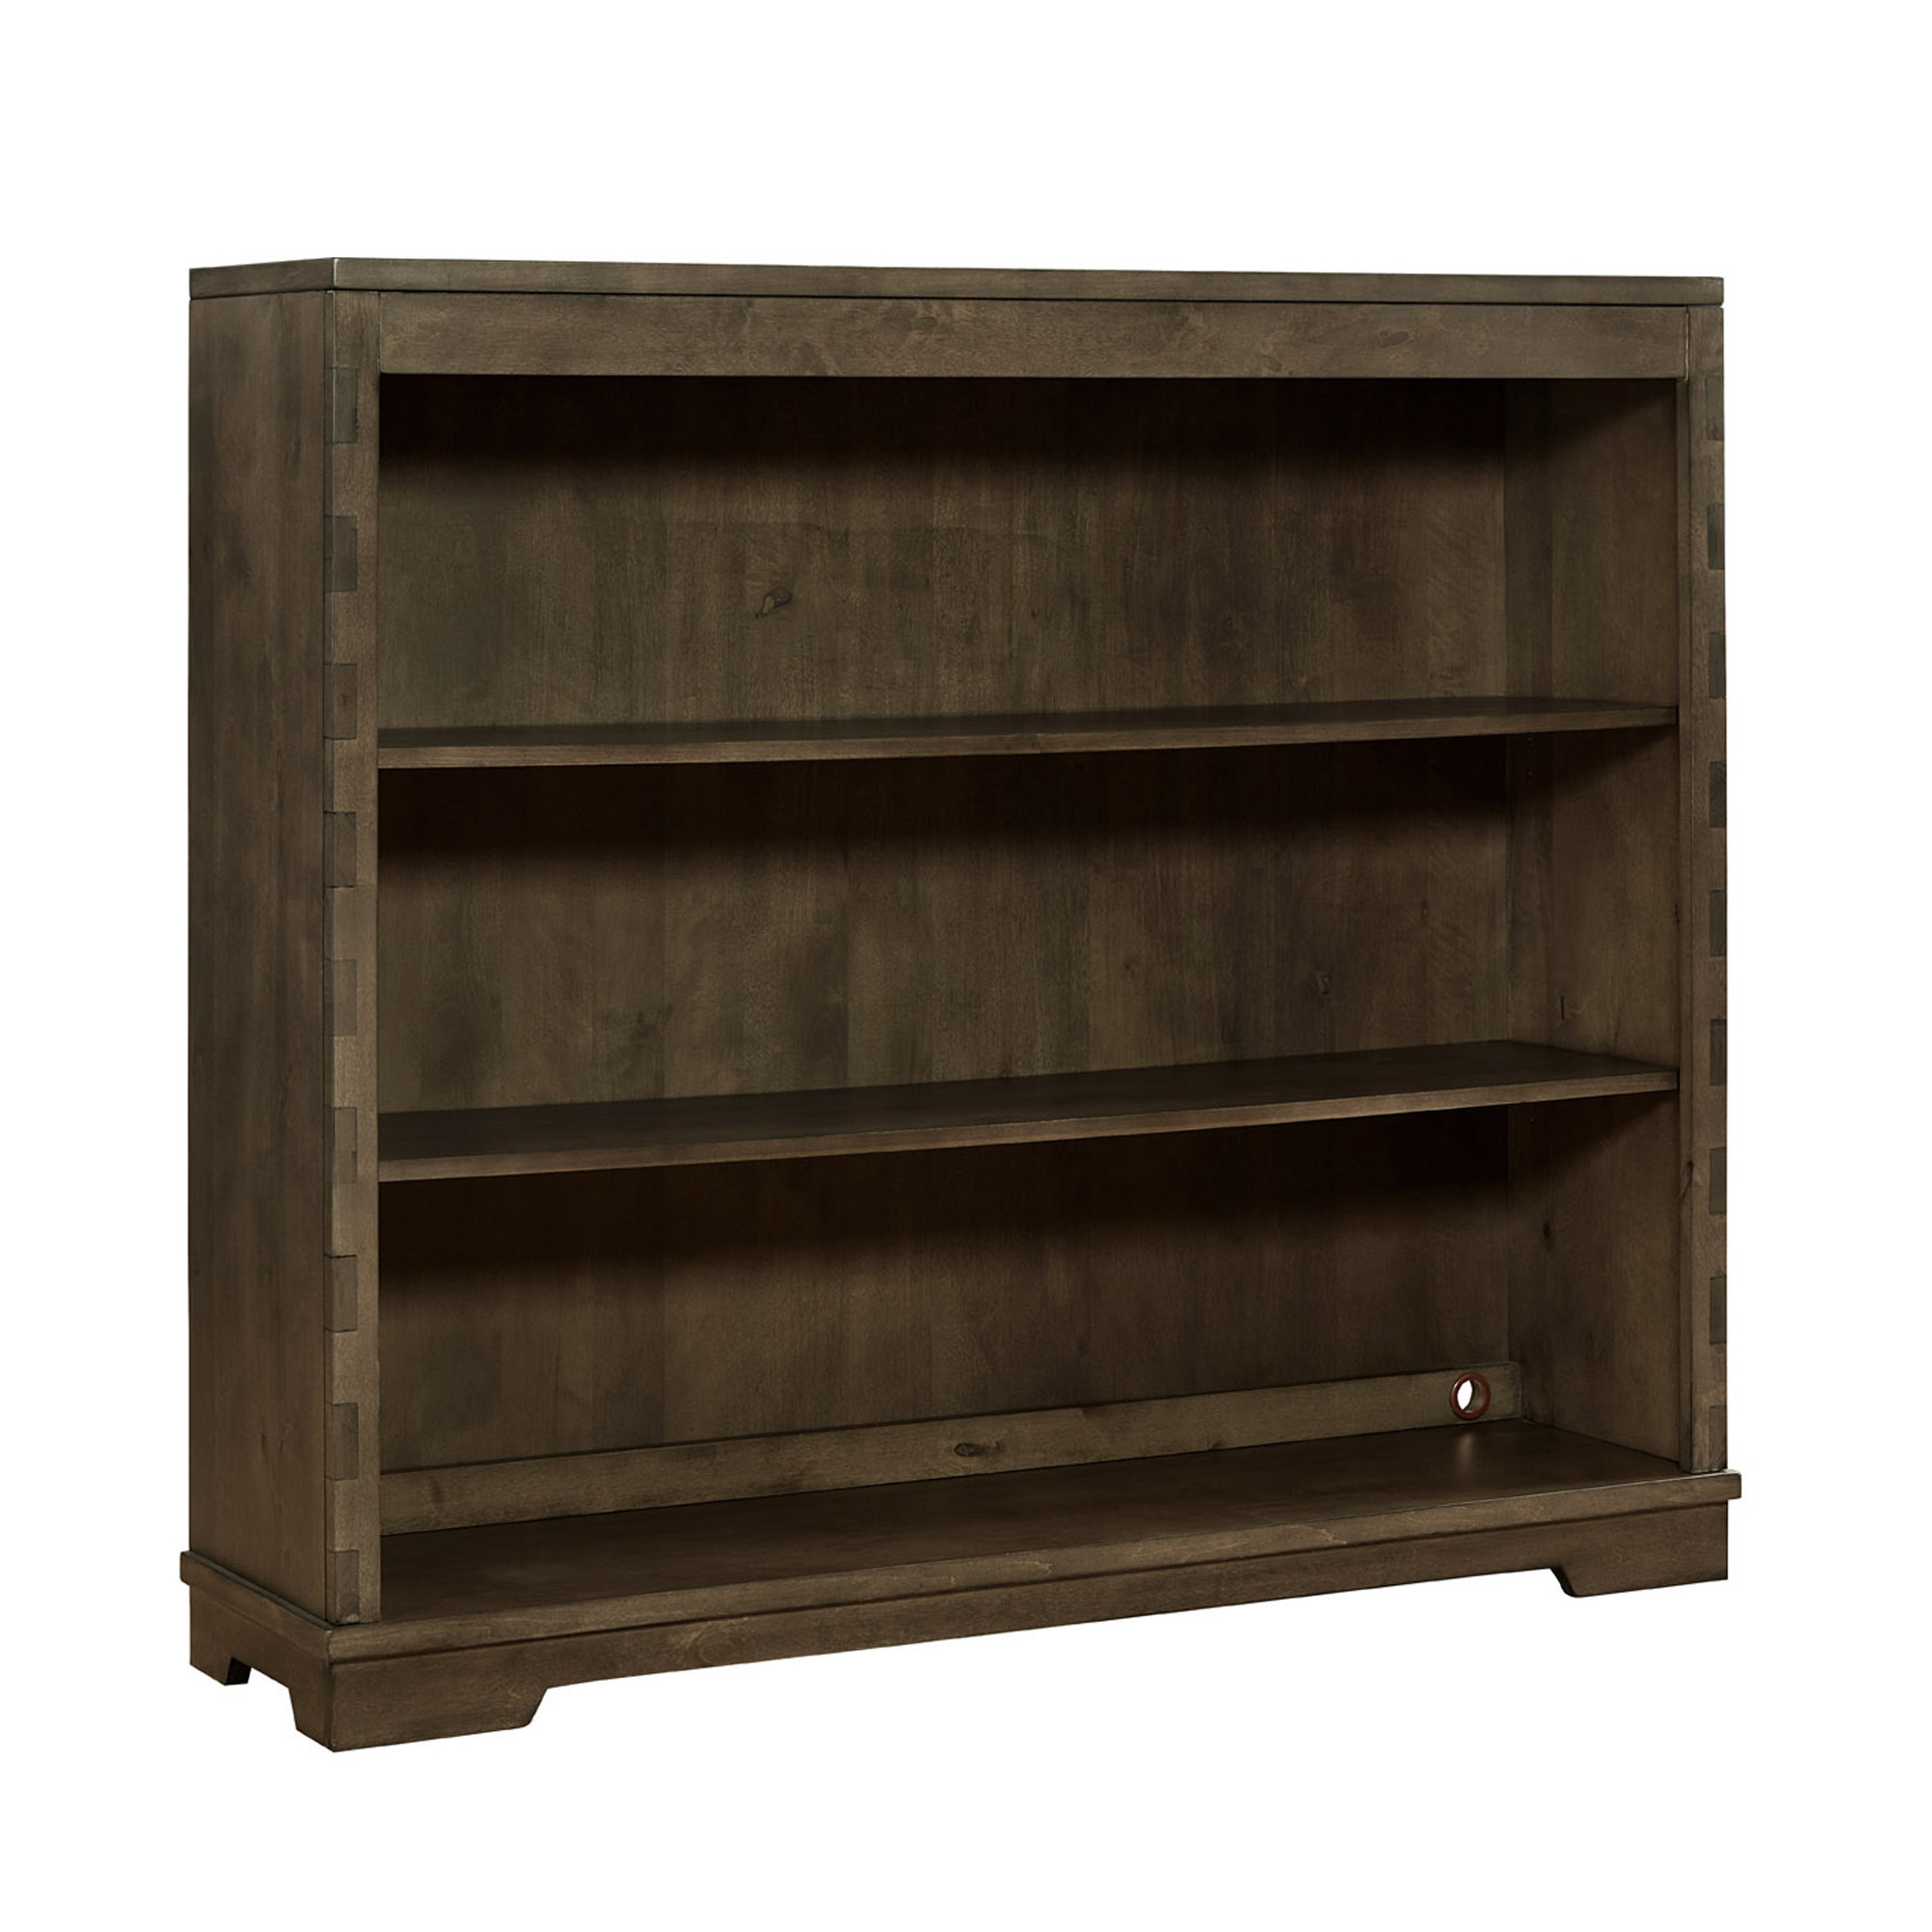 Westwood Dovetail Hutch/Bookcase - Graphite